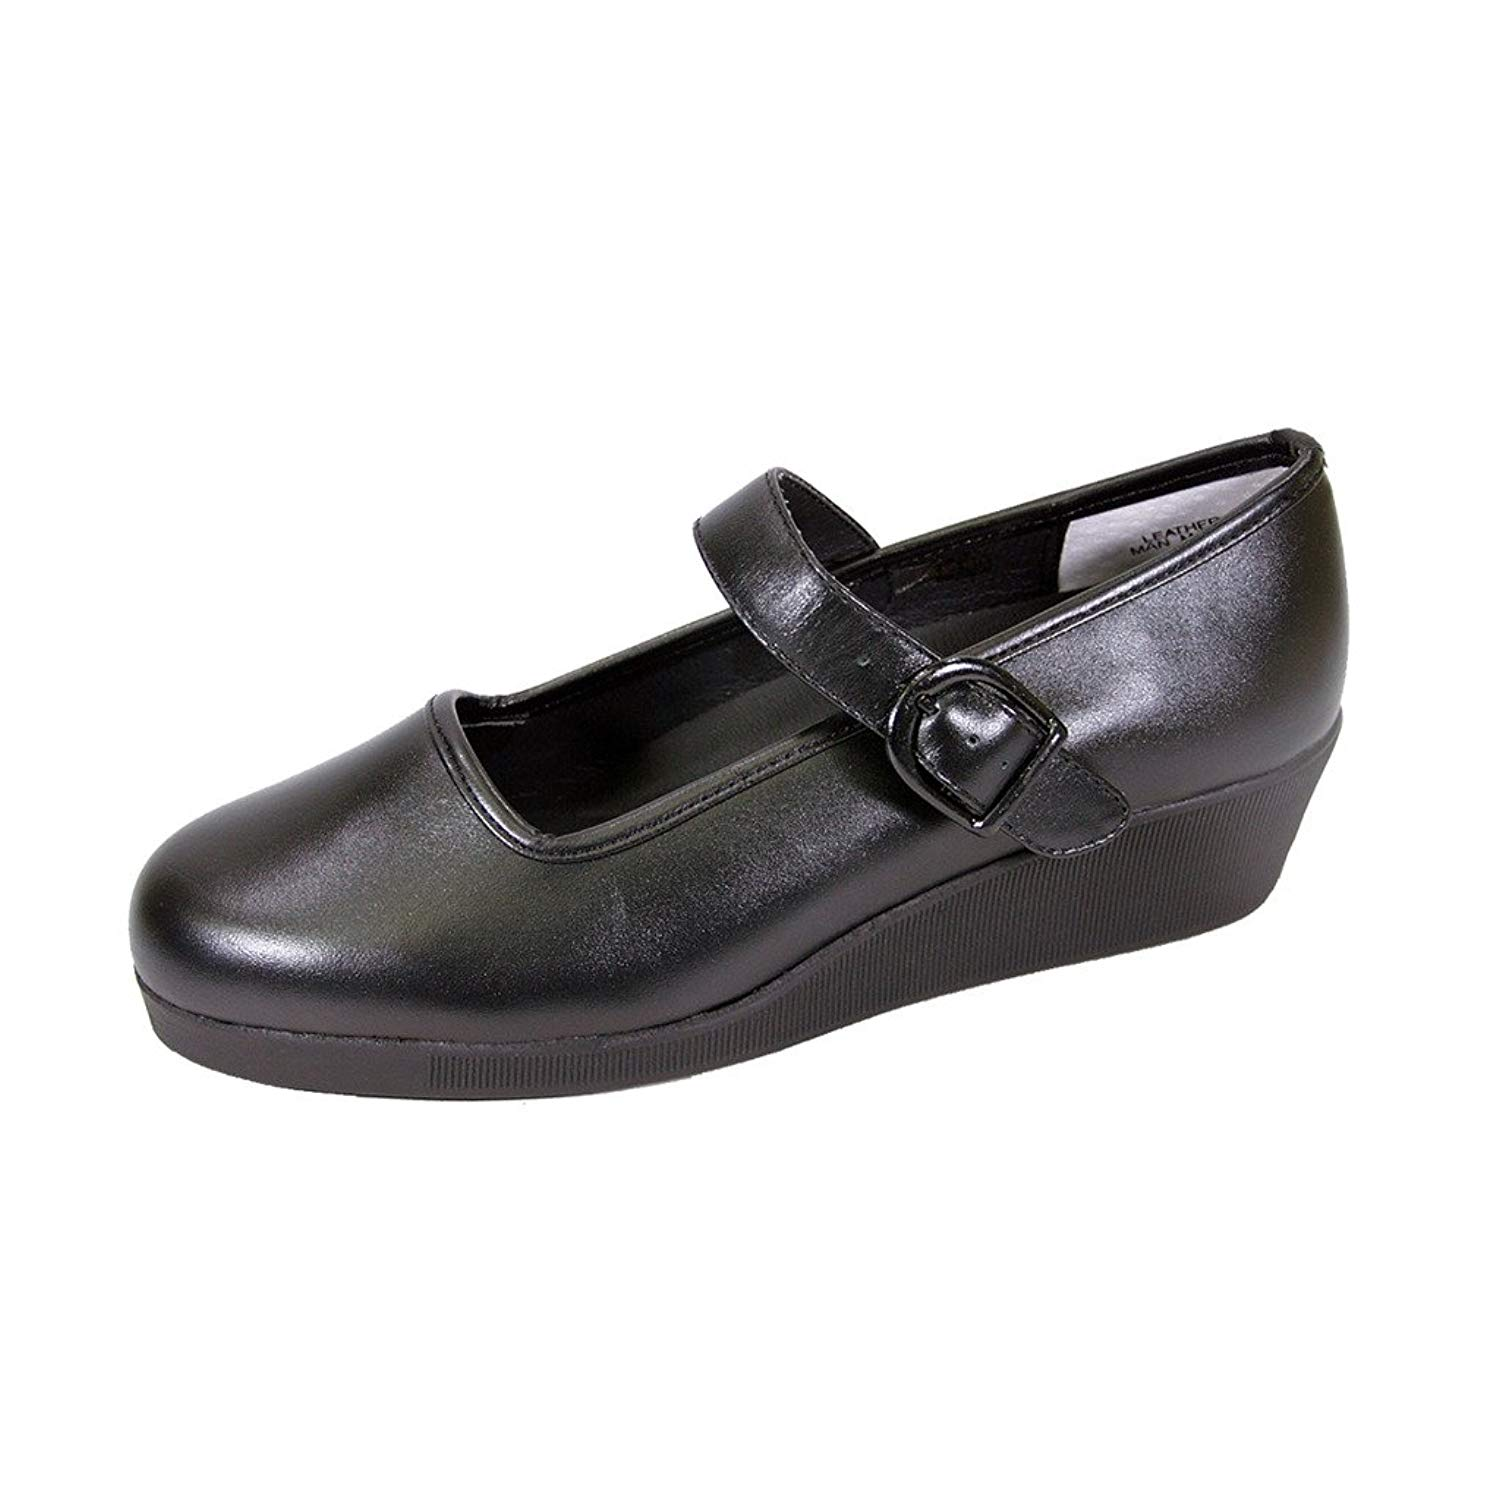 Cheap Wide Width Wedge Shoes Find Wide Width Wedge Shoes Deals On